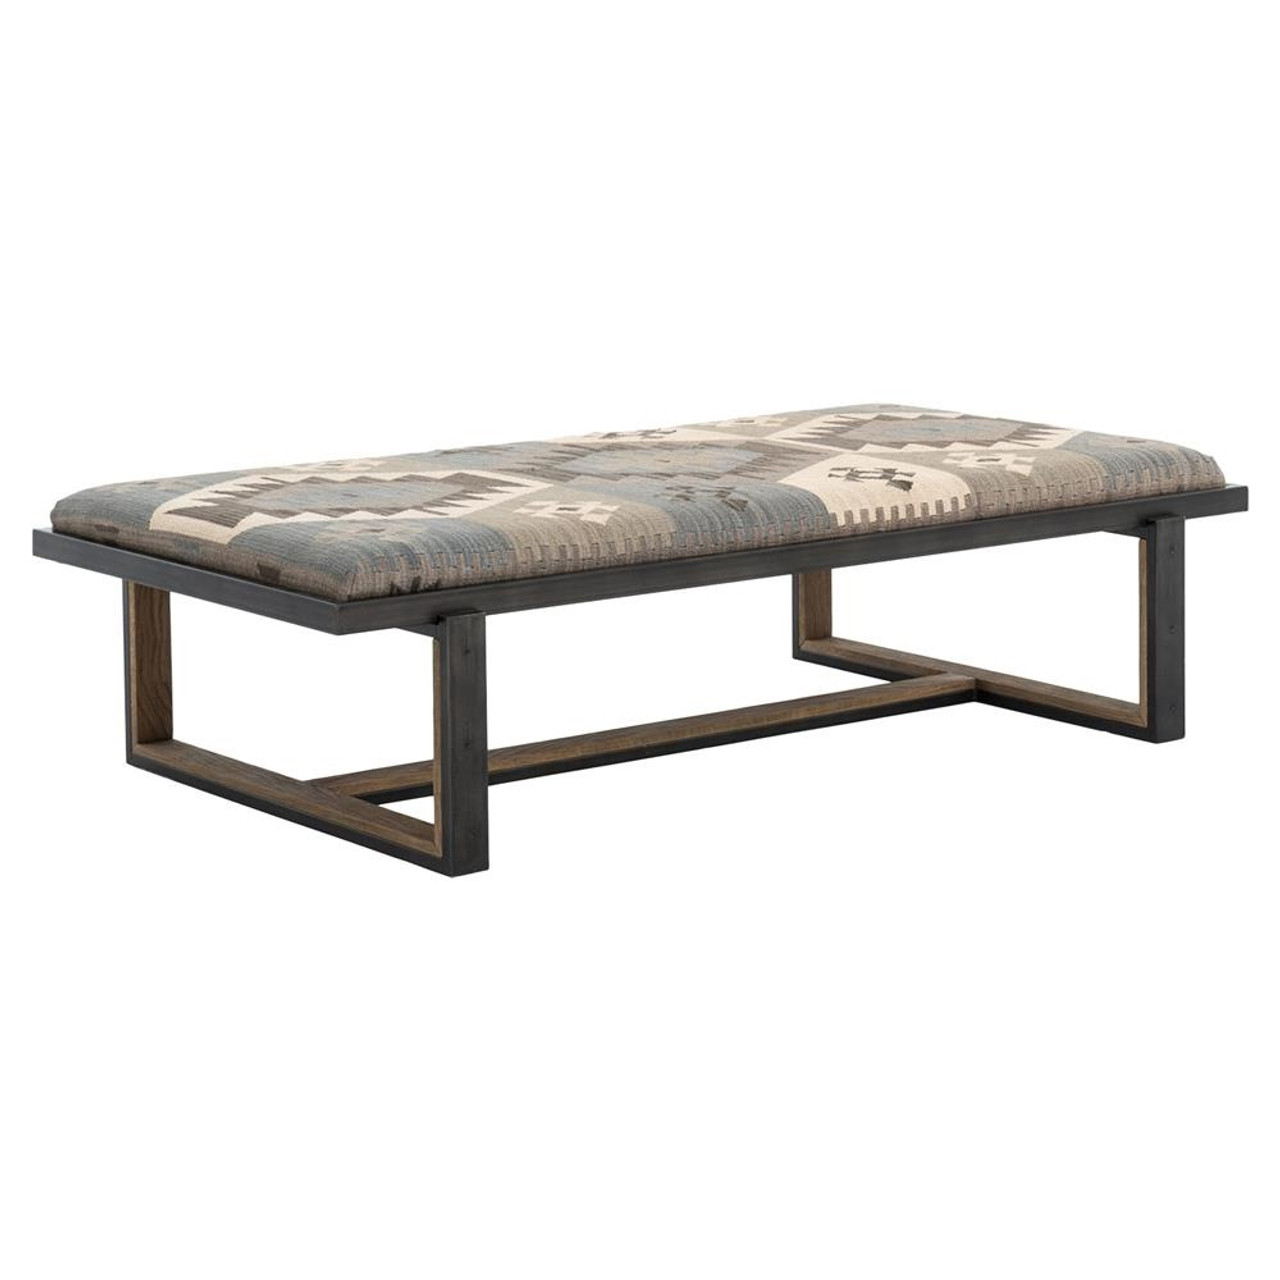 Eclectic Iron And Kilim Upholstered Coffee Table Ottoman Cird W9